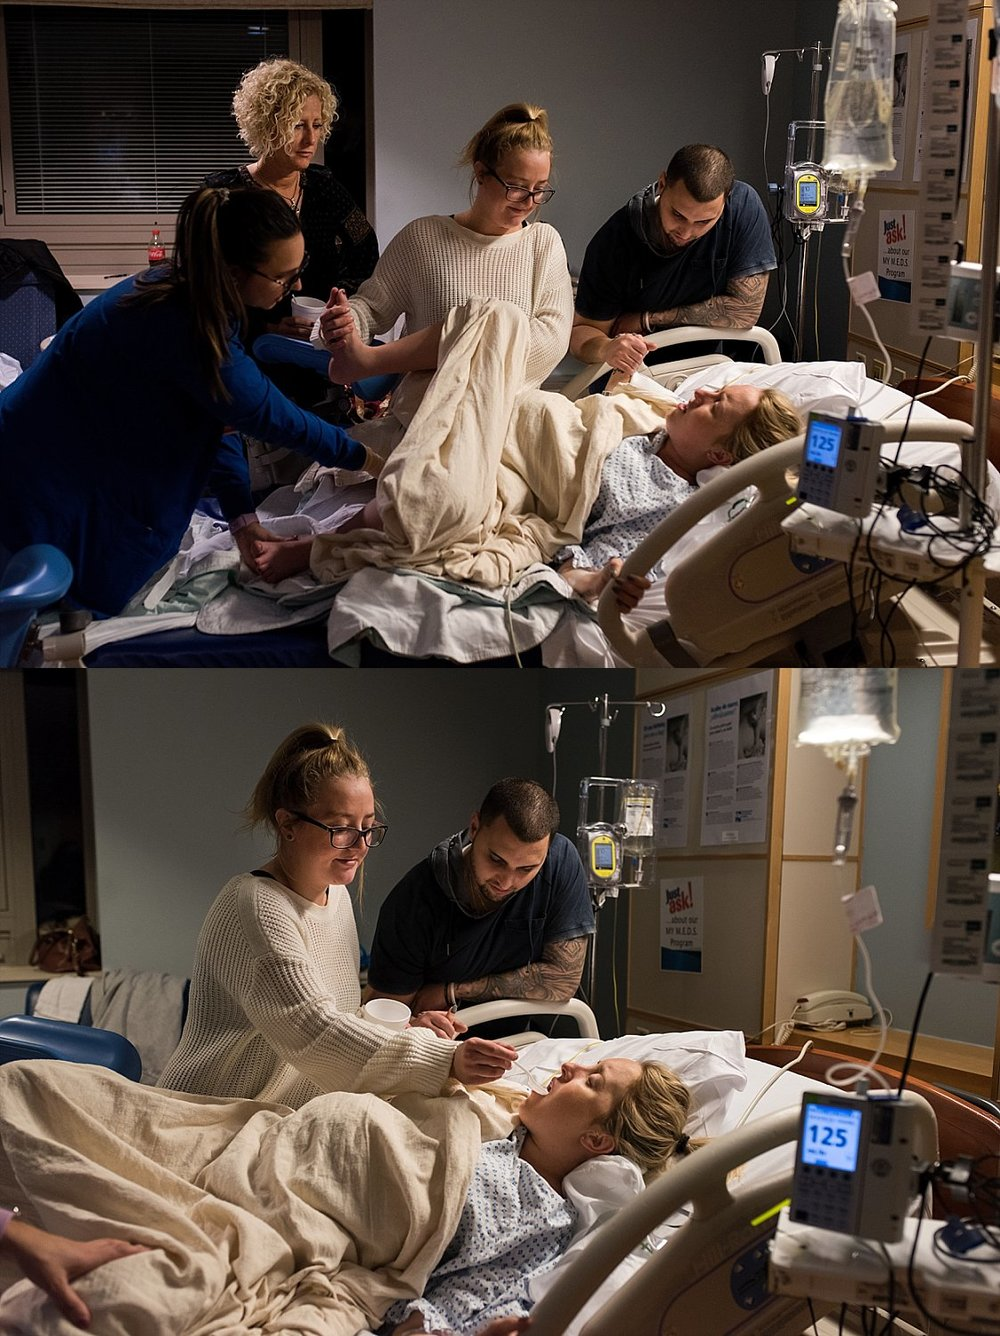 Mother with her support team while giving birth to her baby boy at St Francis Hospital in Hartford, CT.